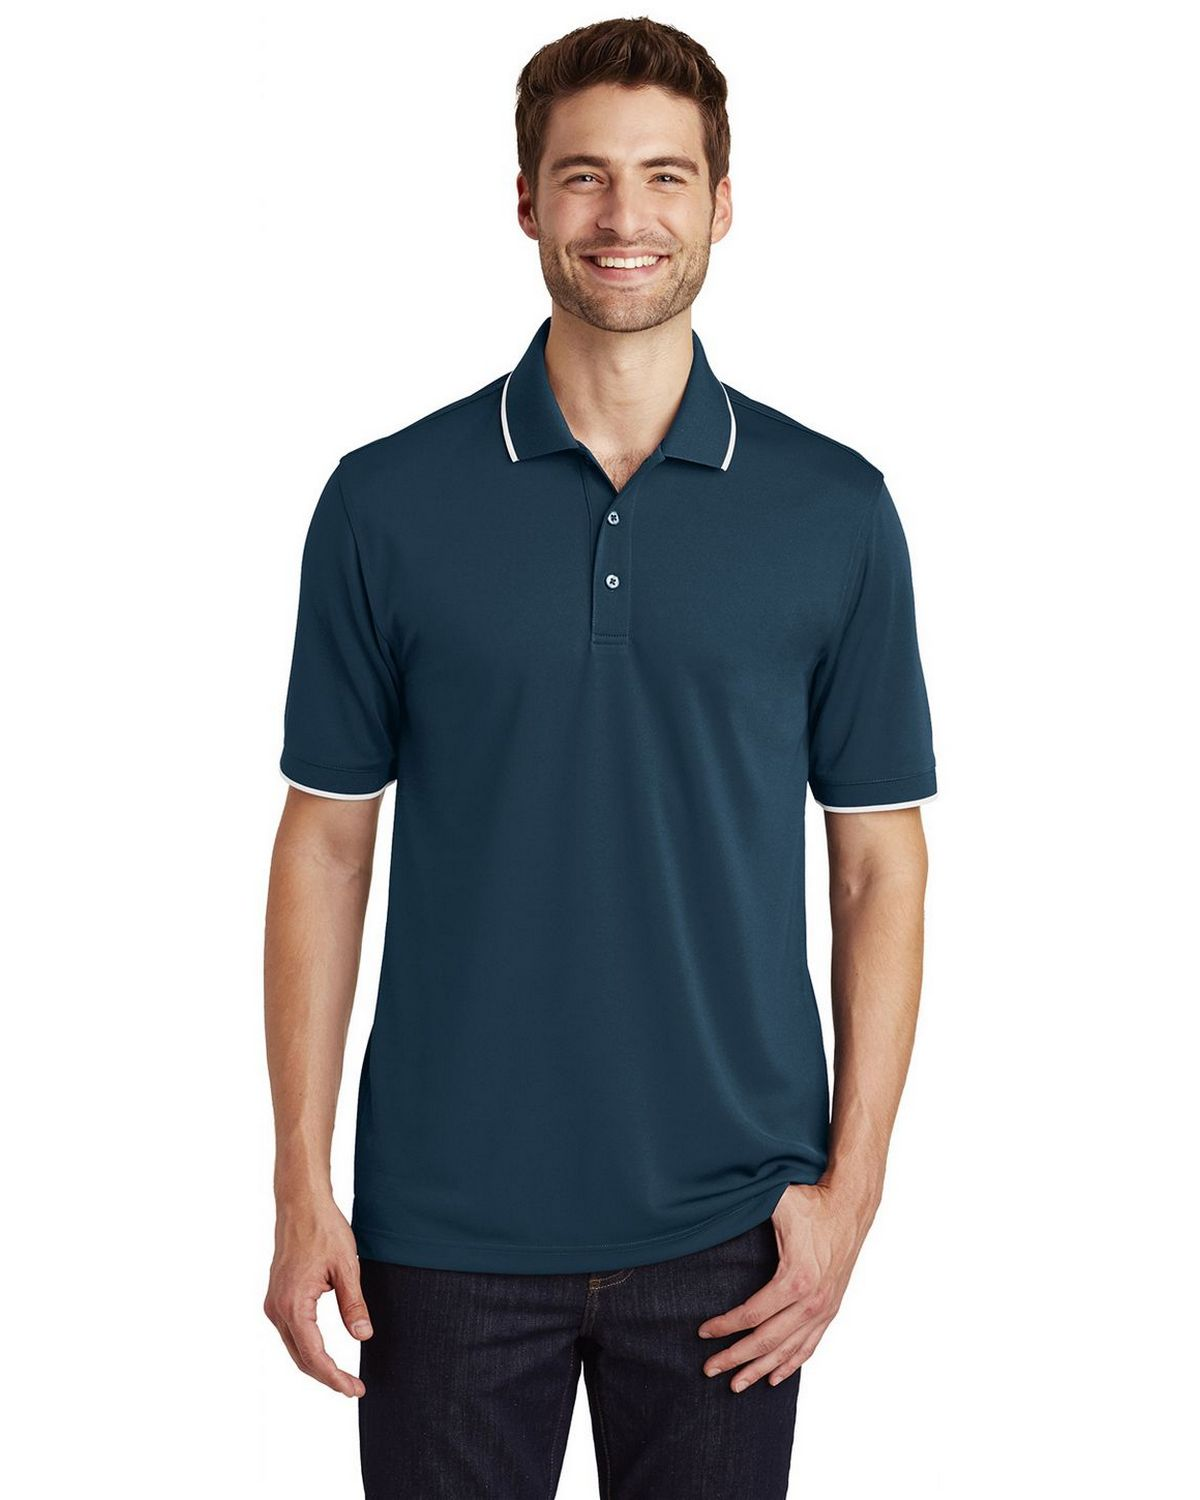 Port Authority K111 Mens Dry Zone UV Micro-Mesh Tipped Polo Shirt